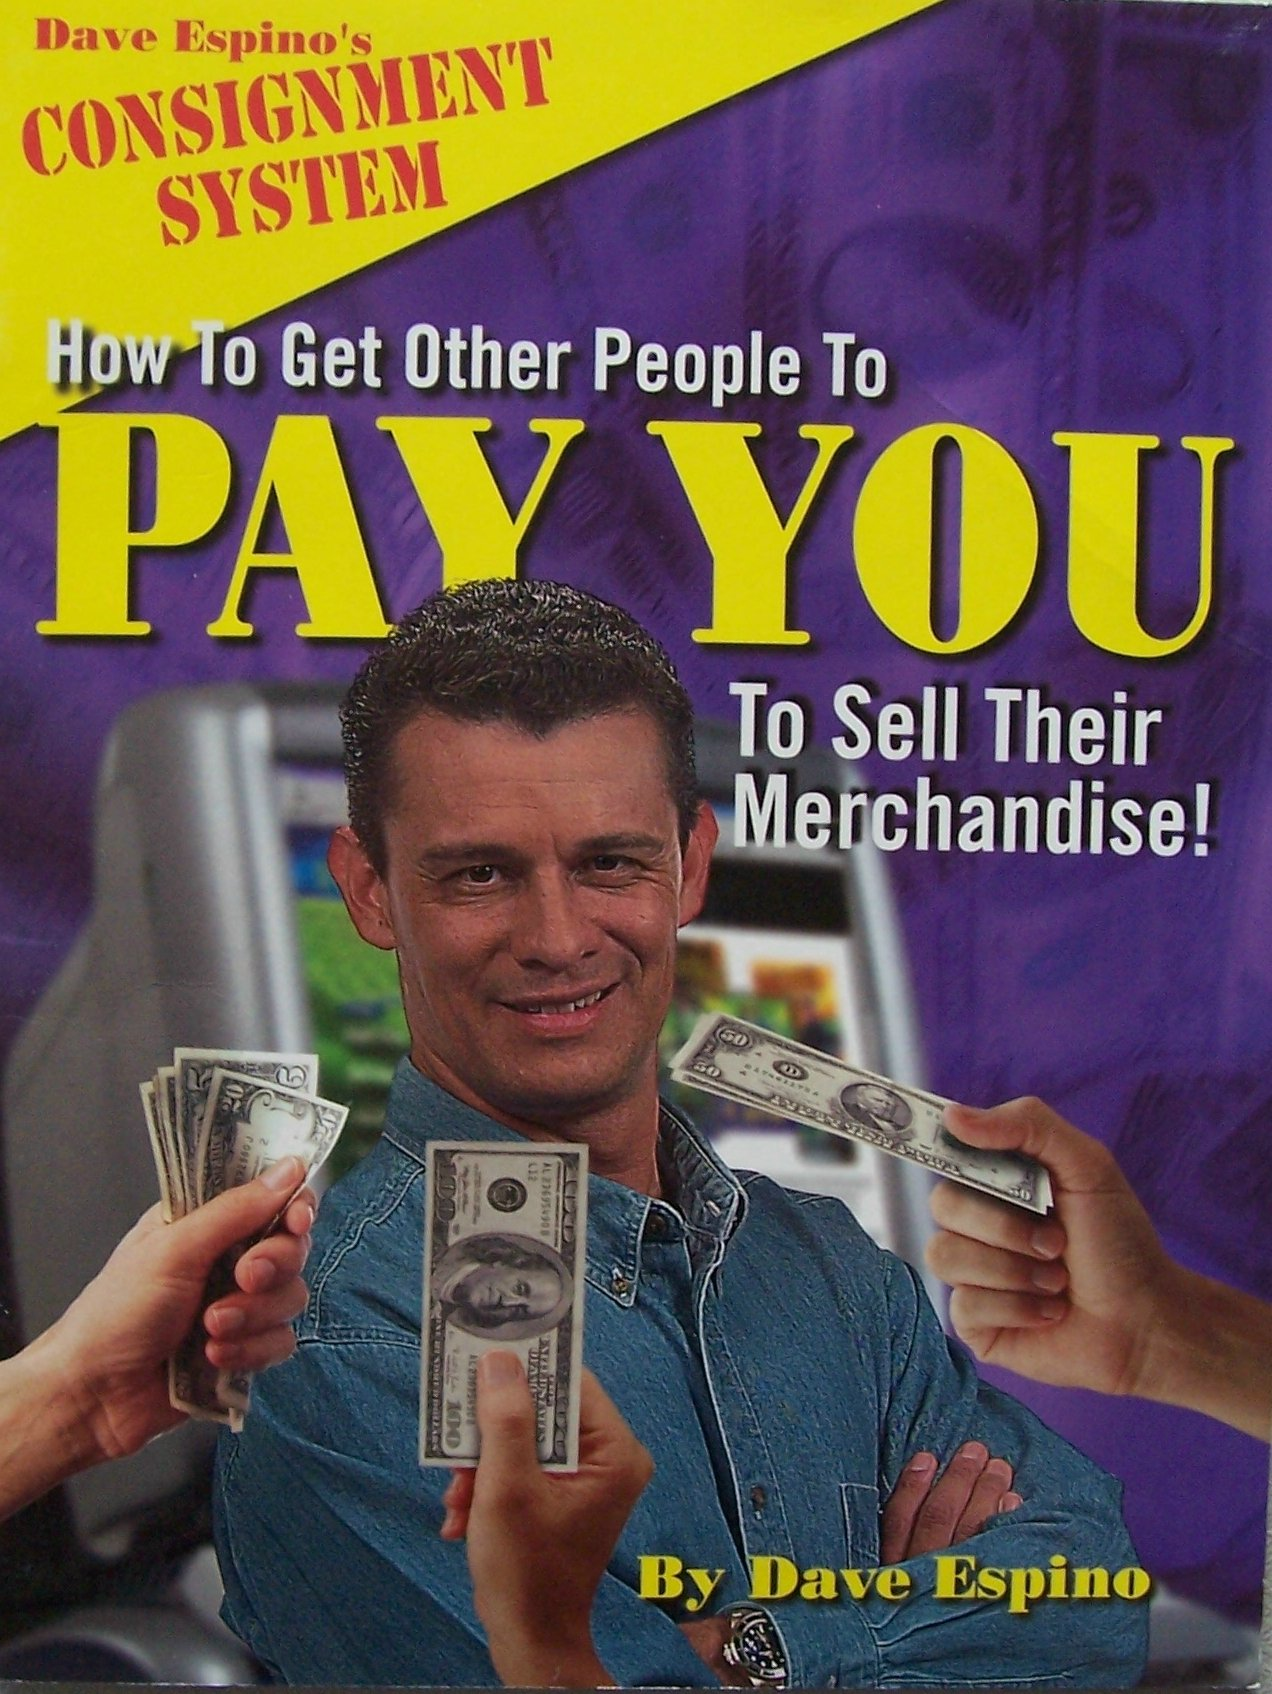 How to Get Other People to PAY YOU To Sell Their Merchandise! (Dave Espino's Consignment System) pdf